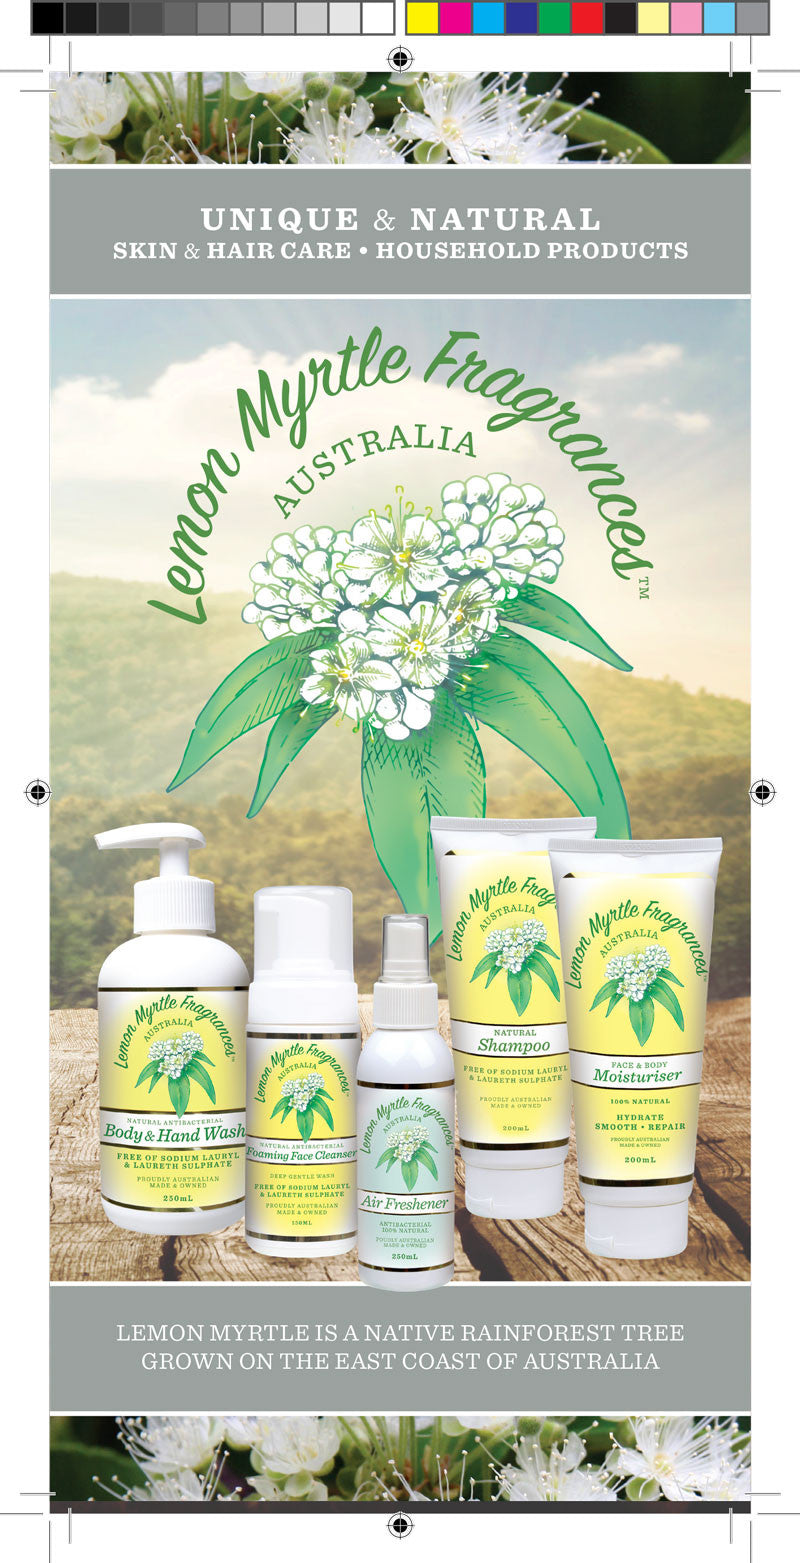 New brochure with natural health beauty and household tips